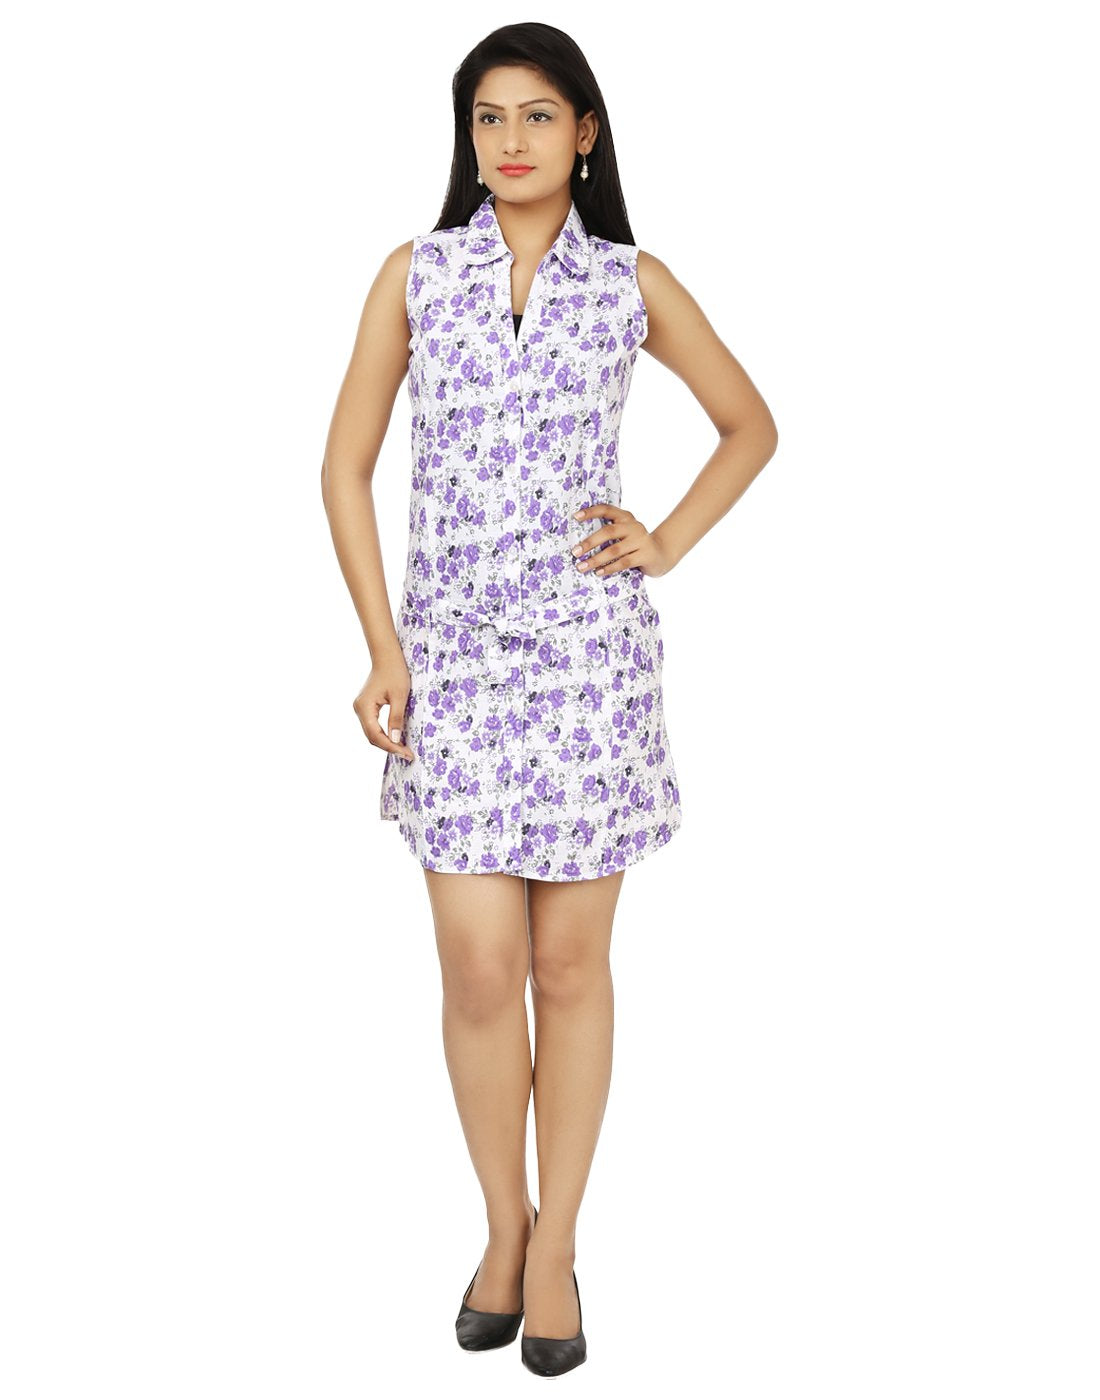 The Women Casual Dress Wht-Prpl.